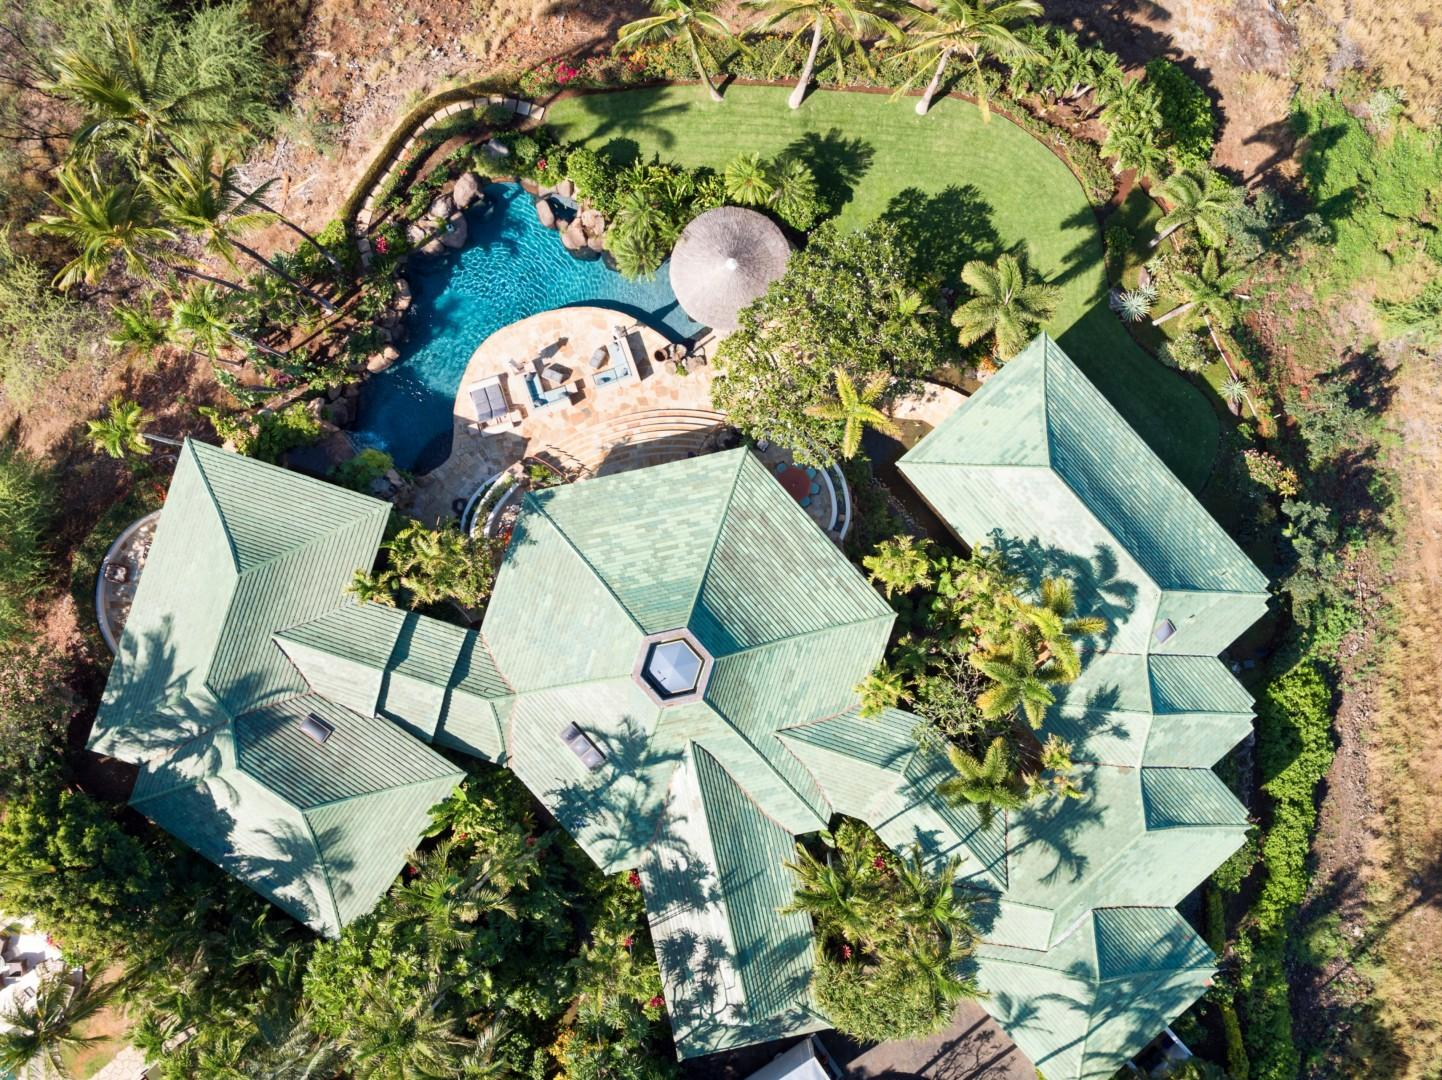 Aerial view of pod-style home offering scope and layout of this incredible architectural gem. Master suite on left, great room in center, four bedroom suites on right.